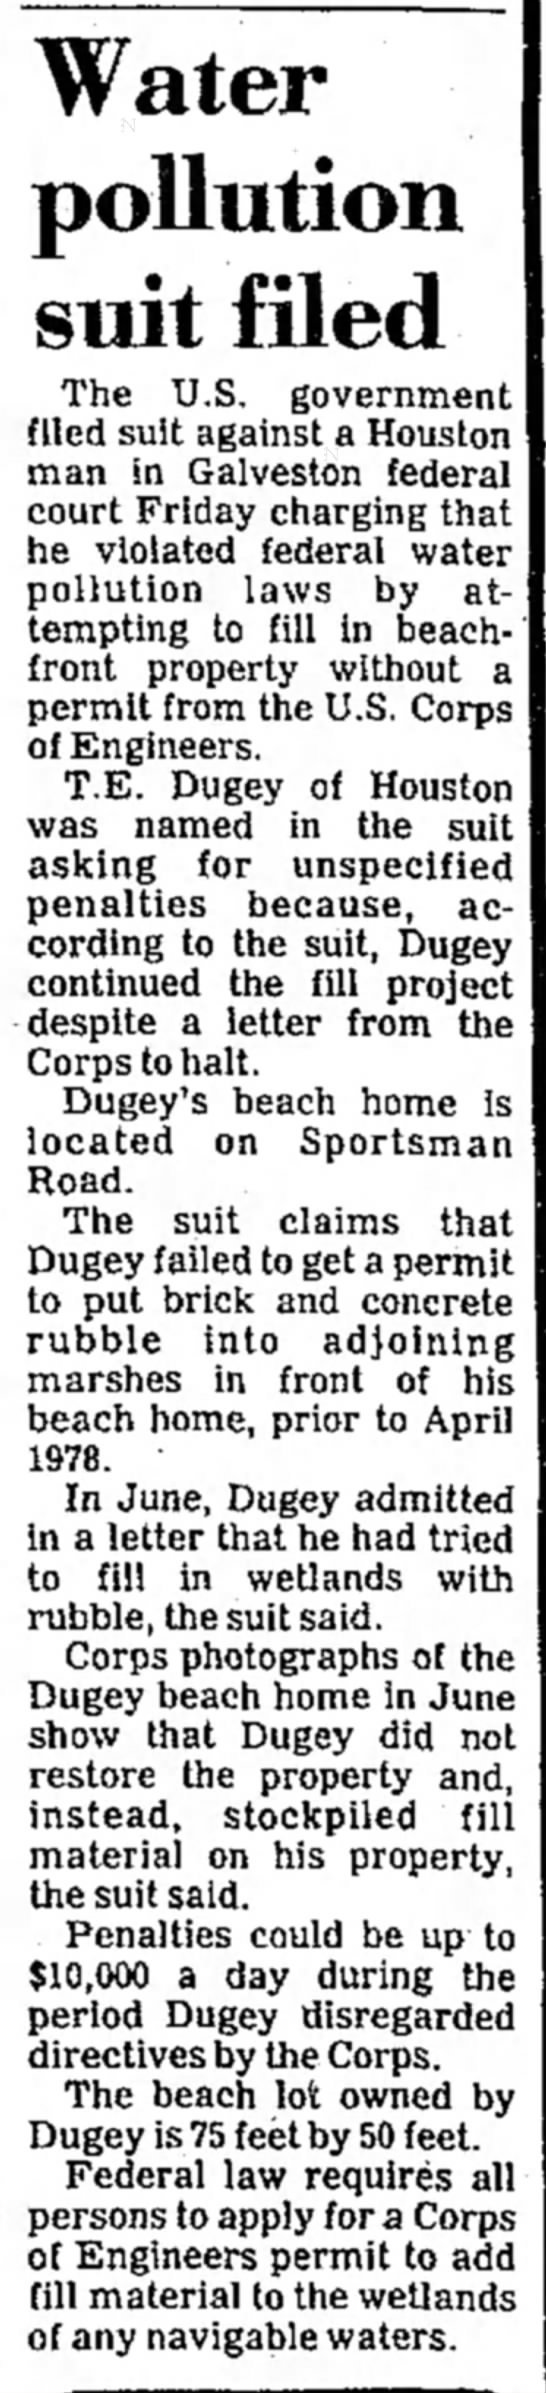 Lawsuit, T.E. Duguy, 12/15/1979 - Water pollution suit filed The U.S. government...